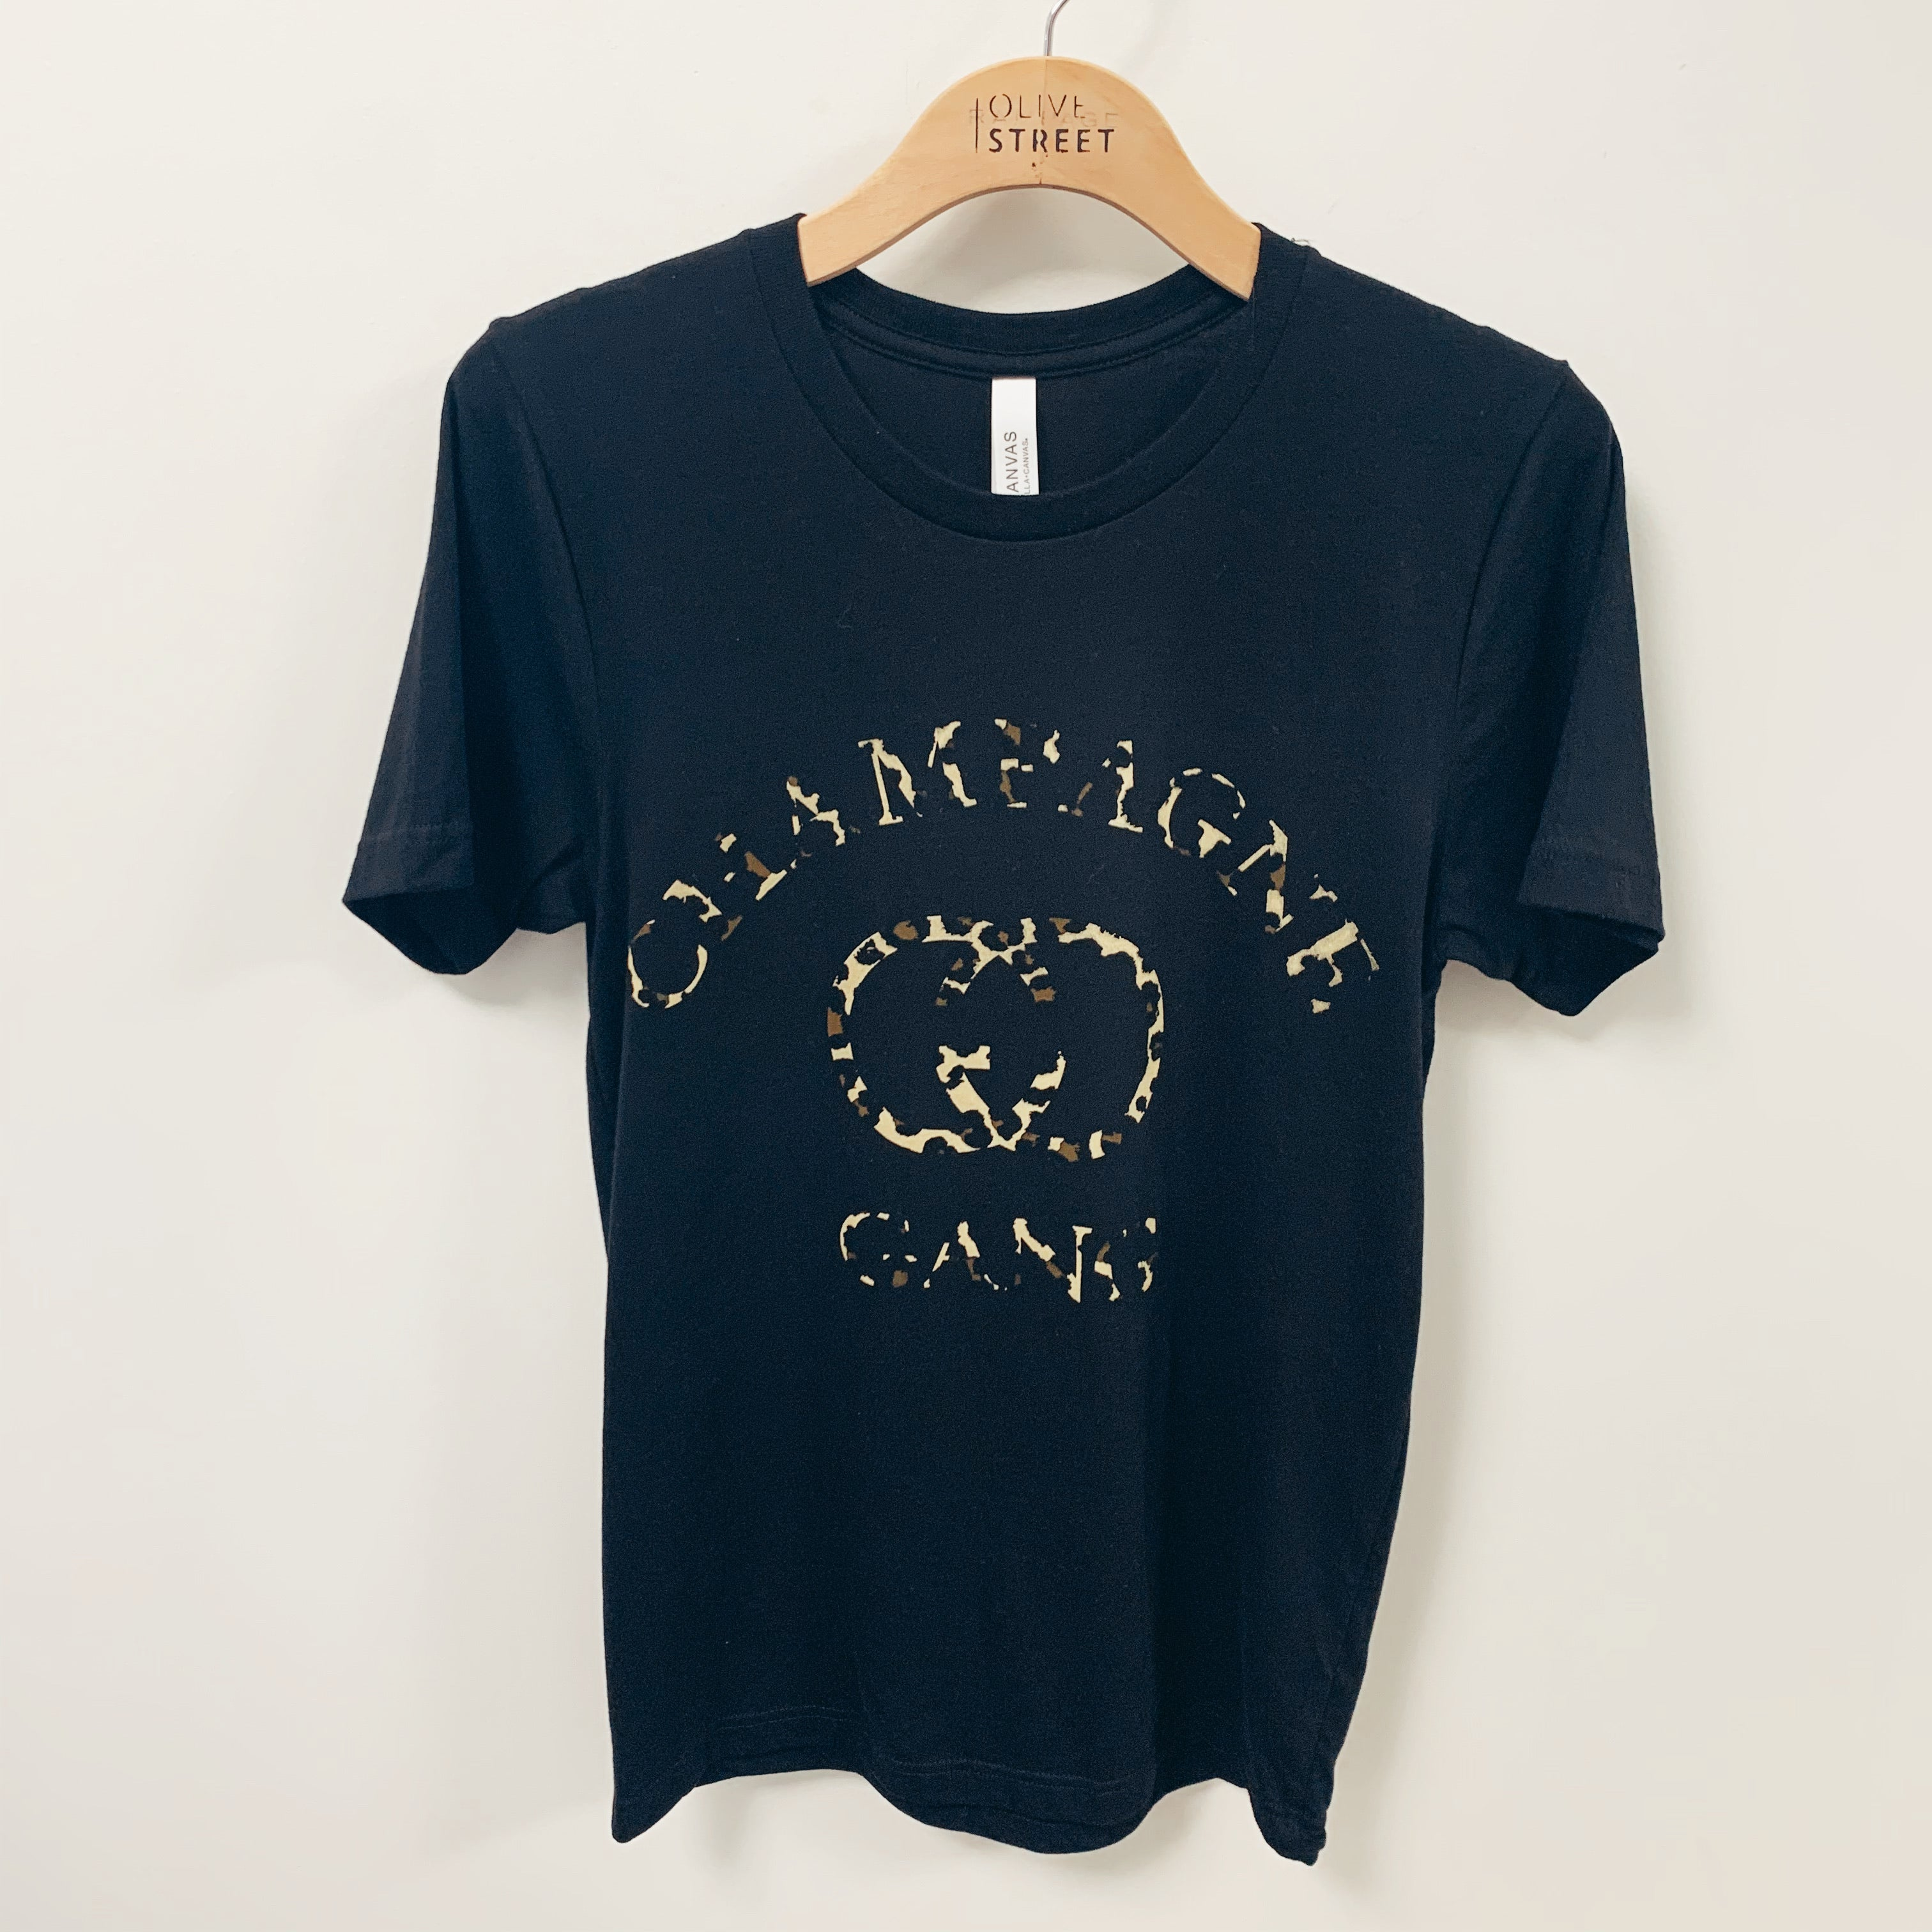 Champagne Gang Tee - Olive Street